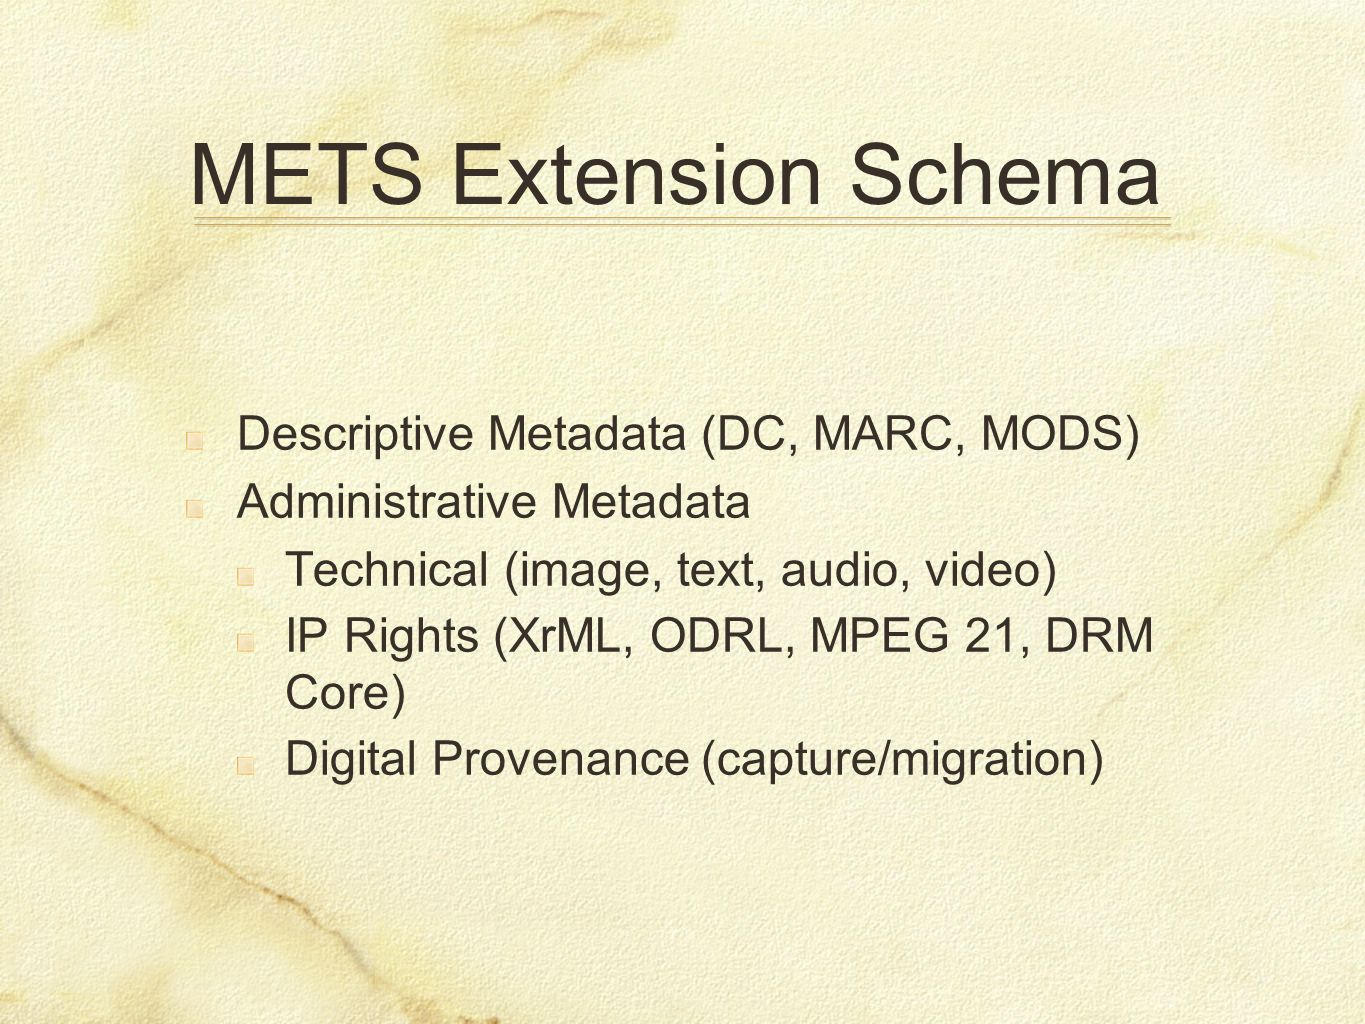 METS Extension Schema Descriptive Metadata (DC, MARC, MODS) Administrative Metadata Technical (image, text, audio, video) IP Rights (XrML, ODRL, MPEG